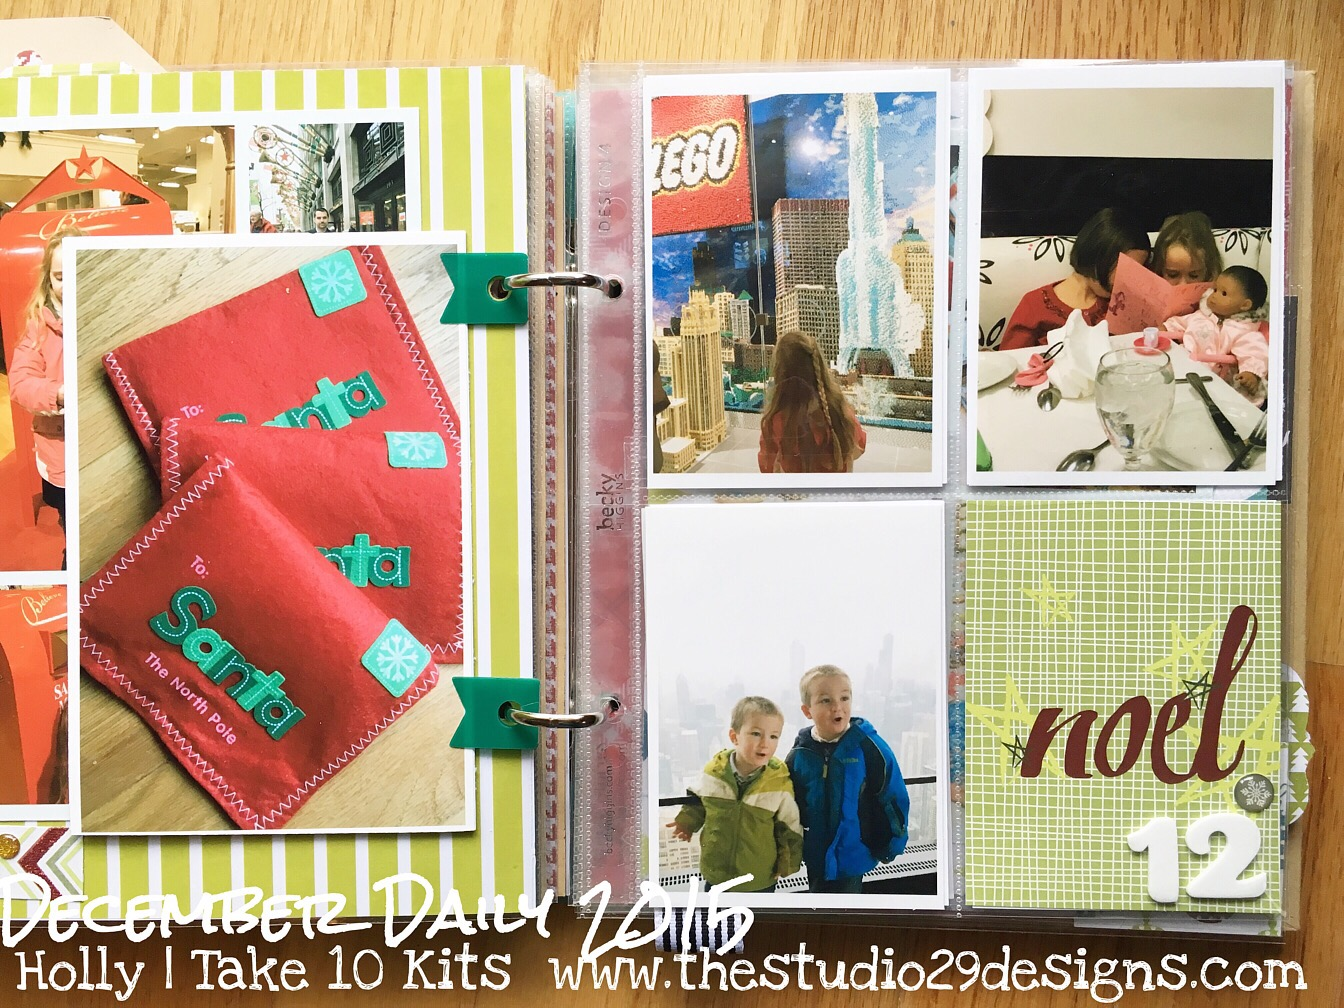 Holly | Take 10 Kits  www.thestudio29designs.com